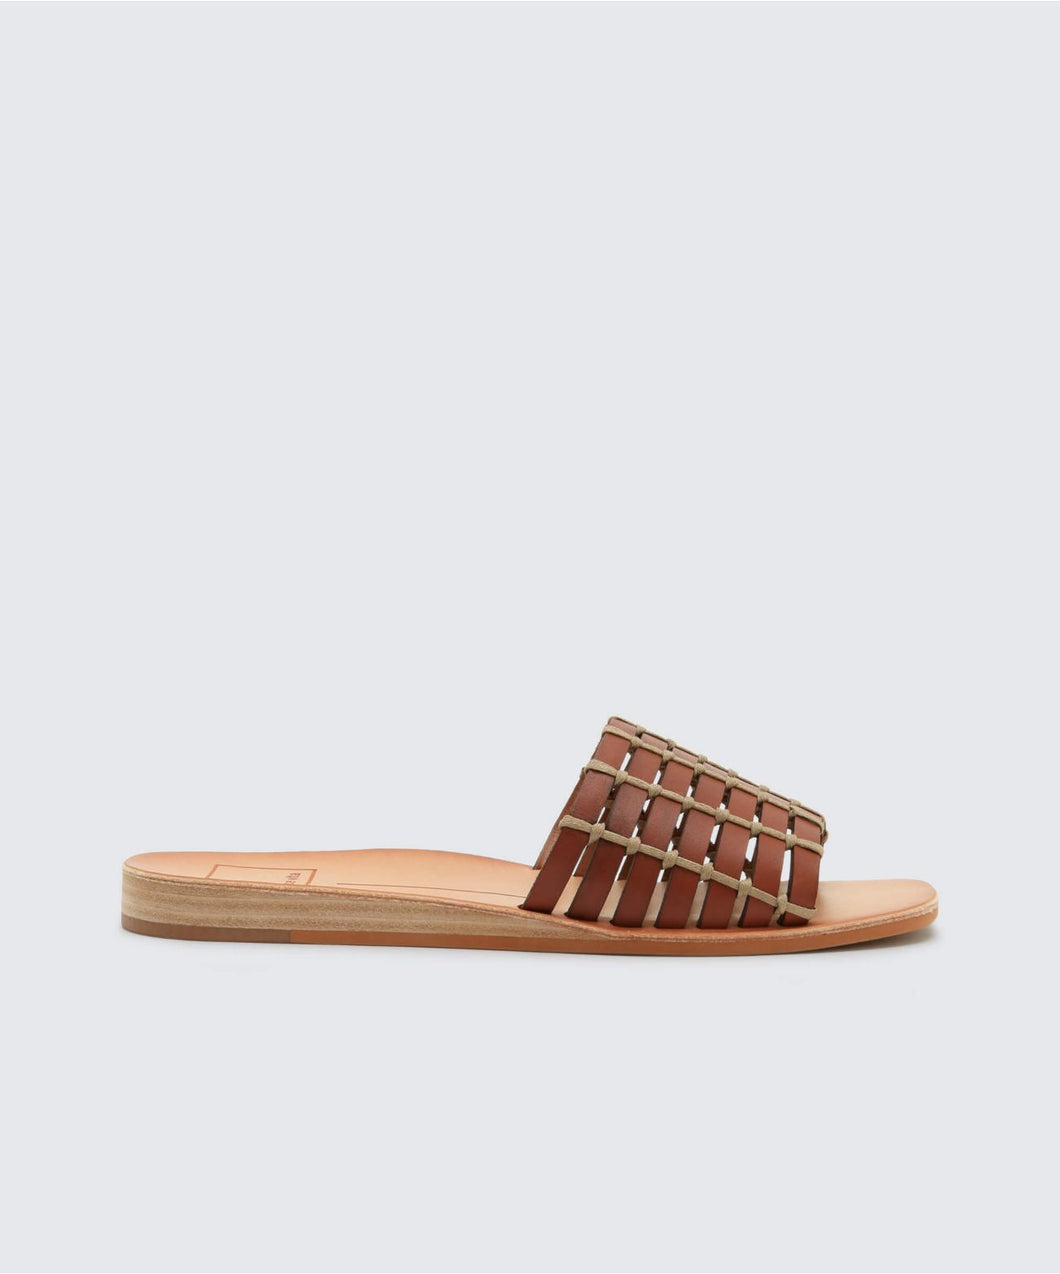 COLSEN SANDALS BROWN -   Dolce Vita